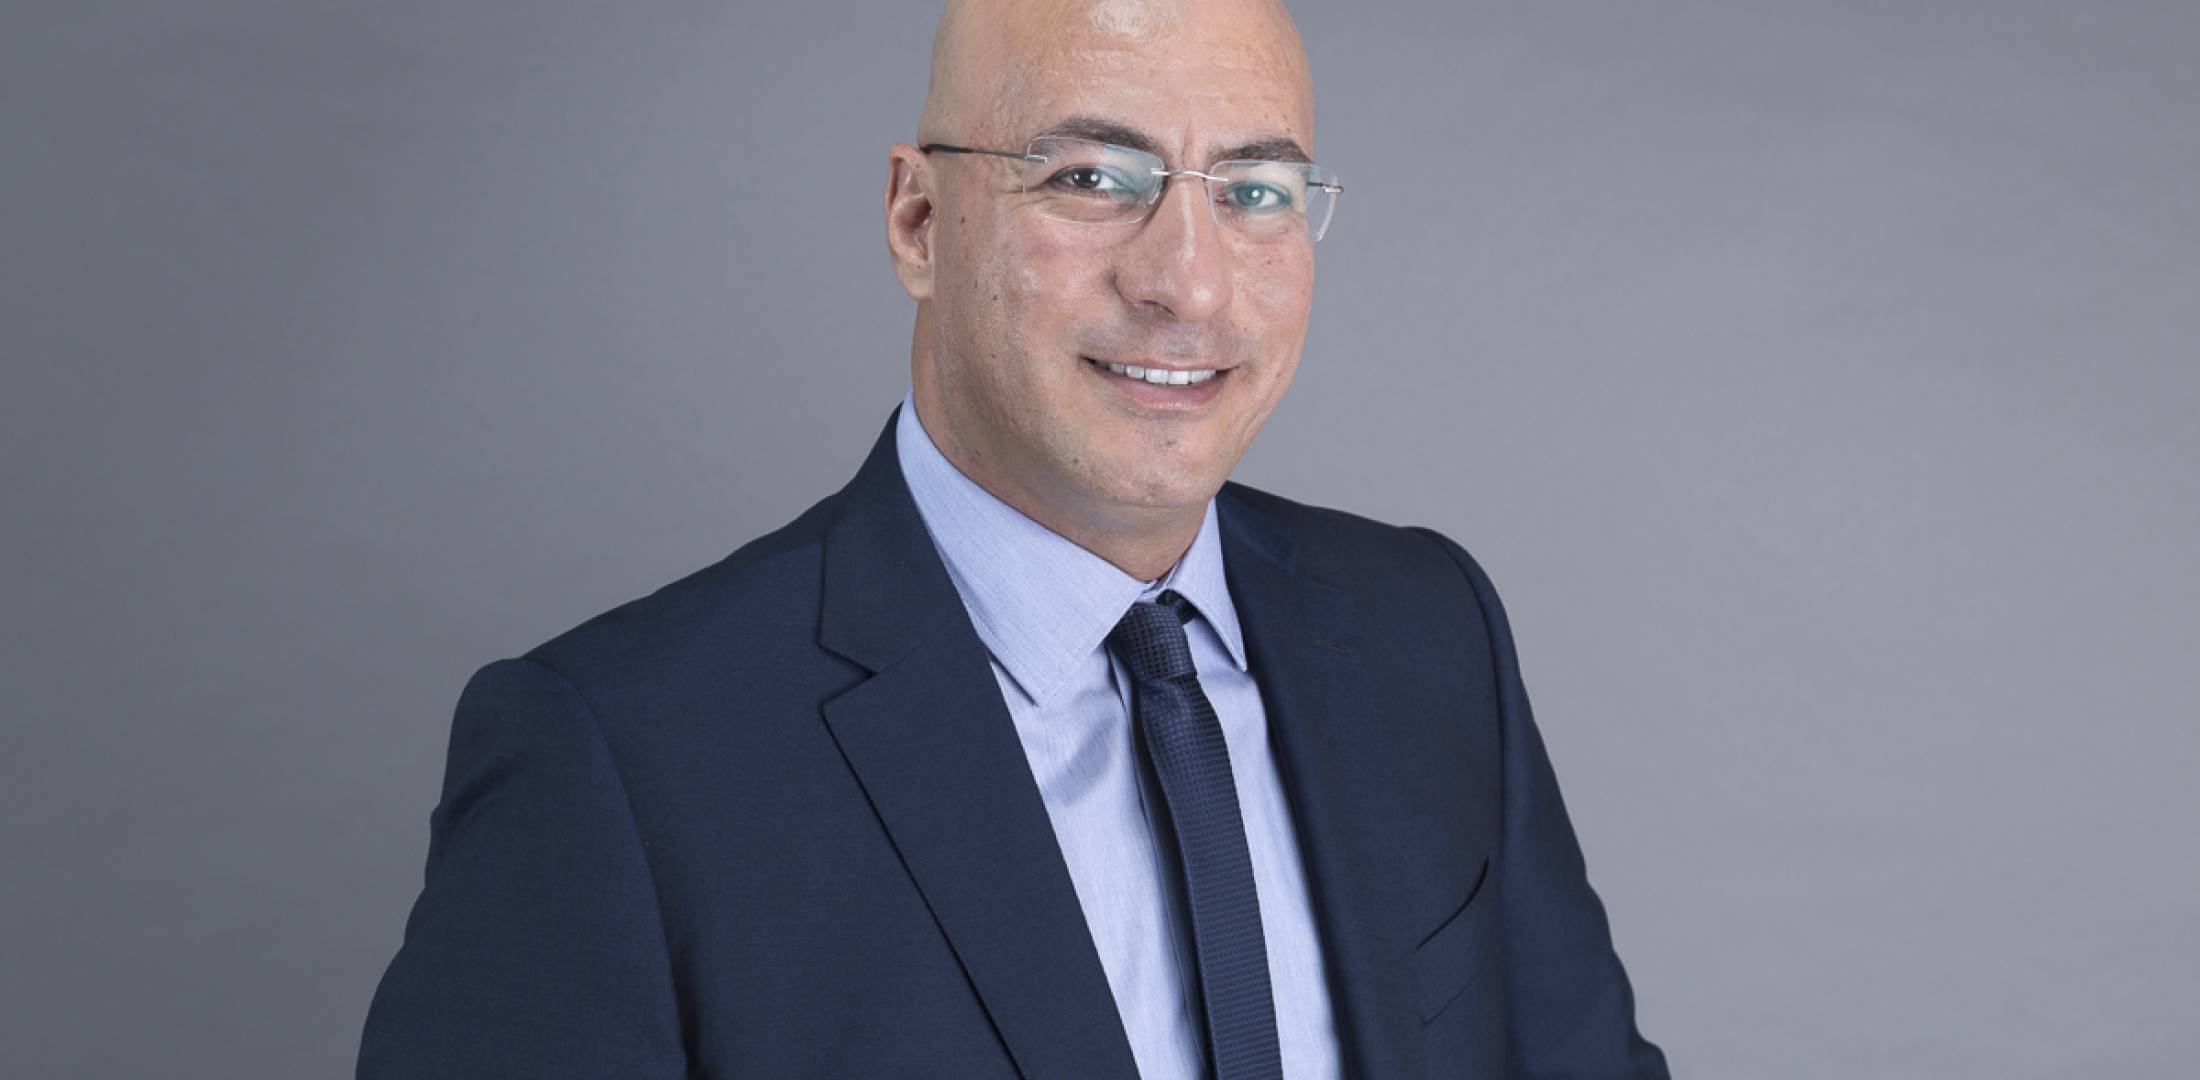 Issa Zuriqi, commercial director, Hadid International Services, Dubai (Hadid)